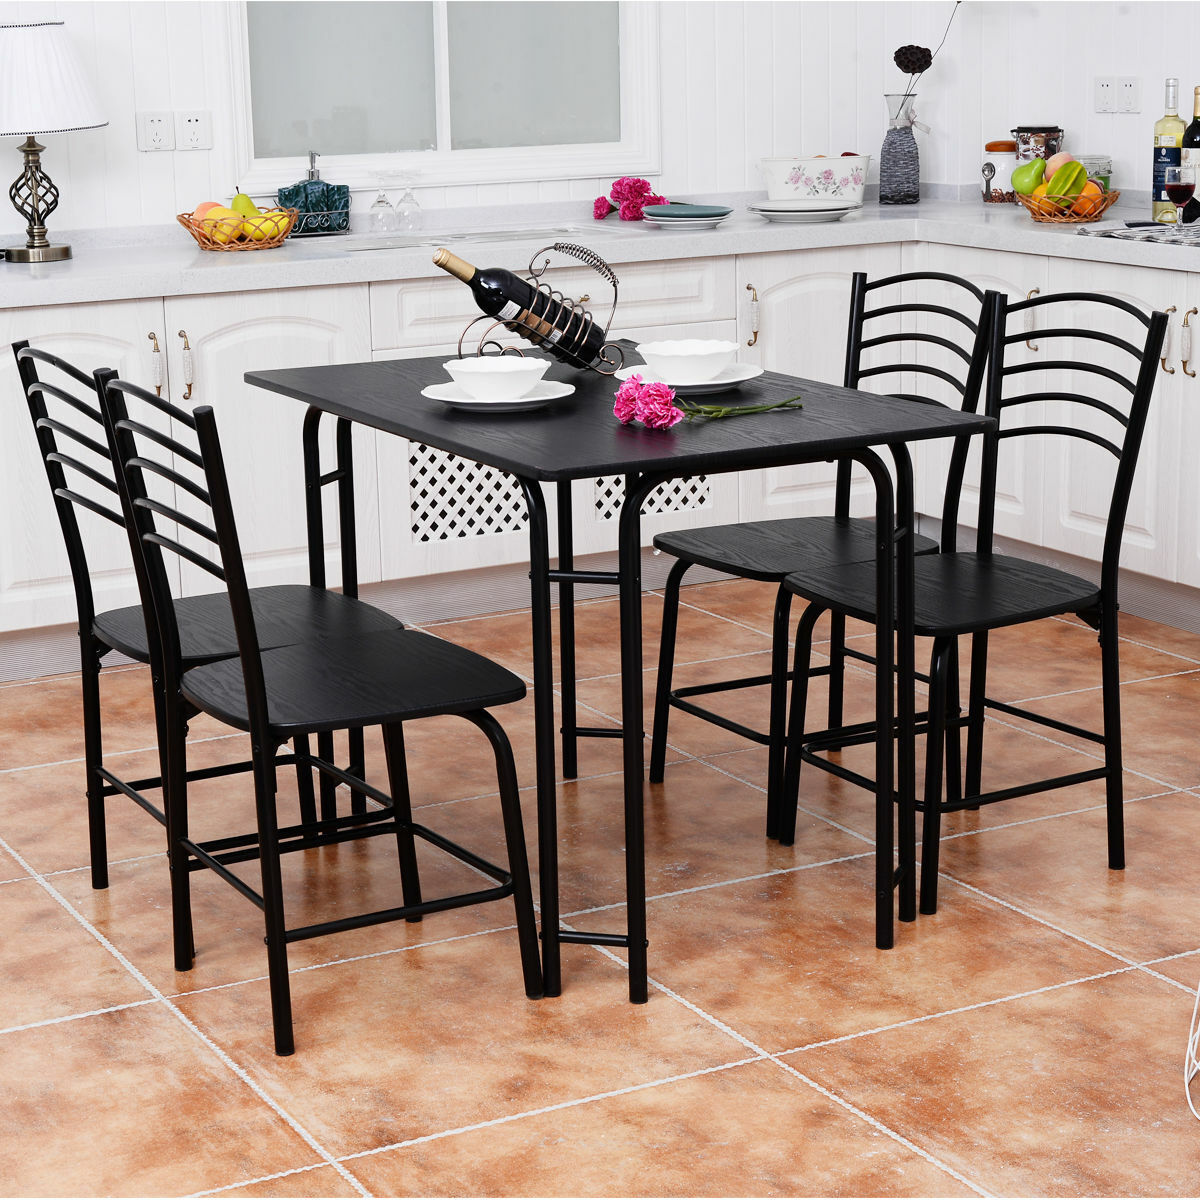 5 Pcs Modern Dining Table Set 4 Chairs Steel Frame Home Kitchen